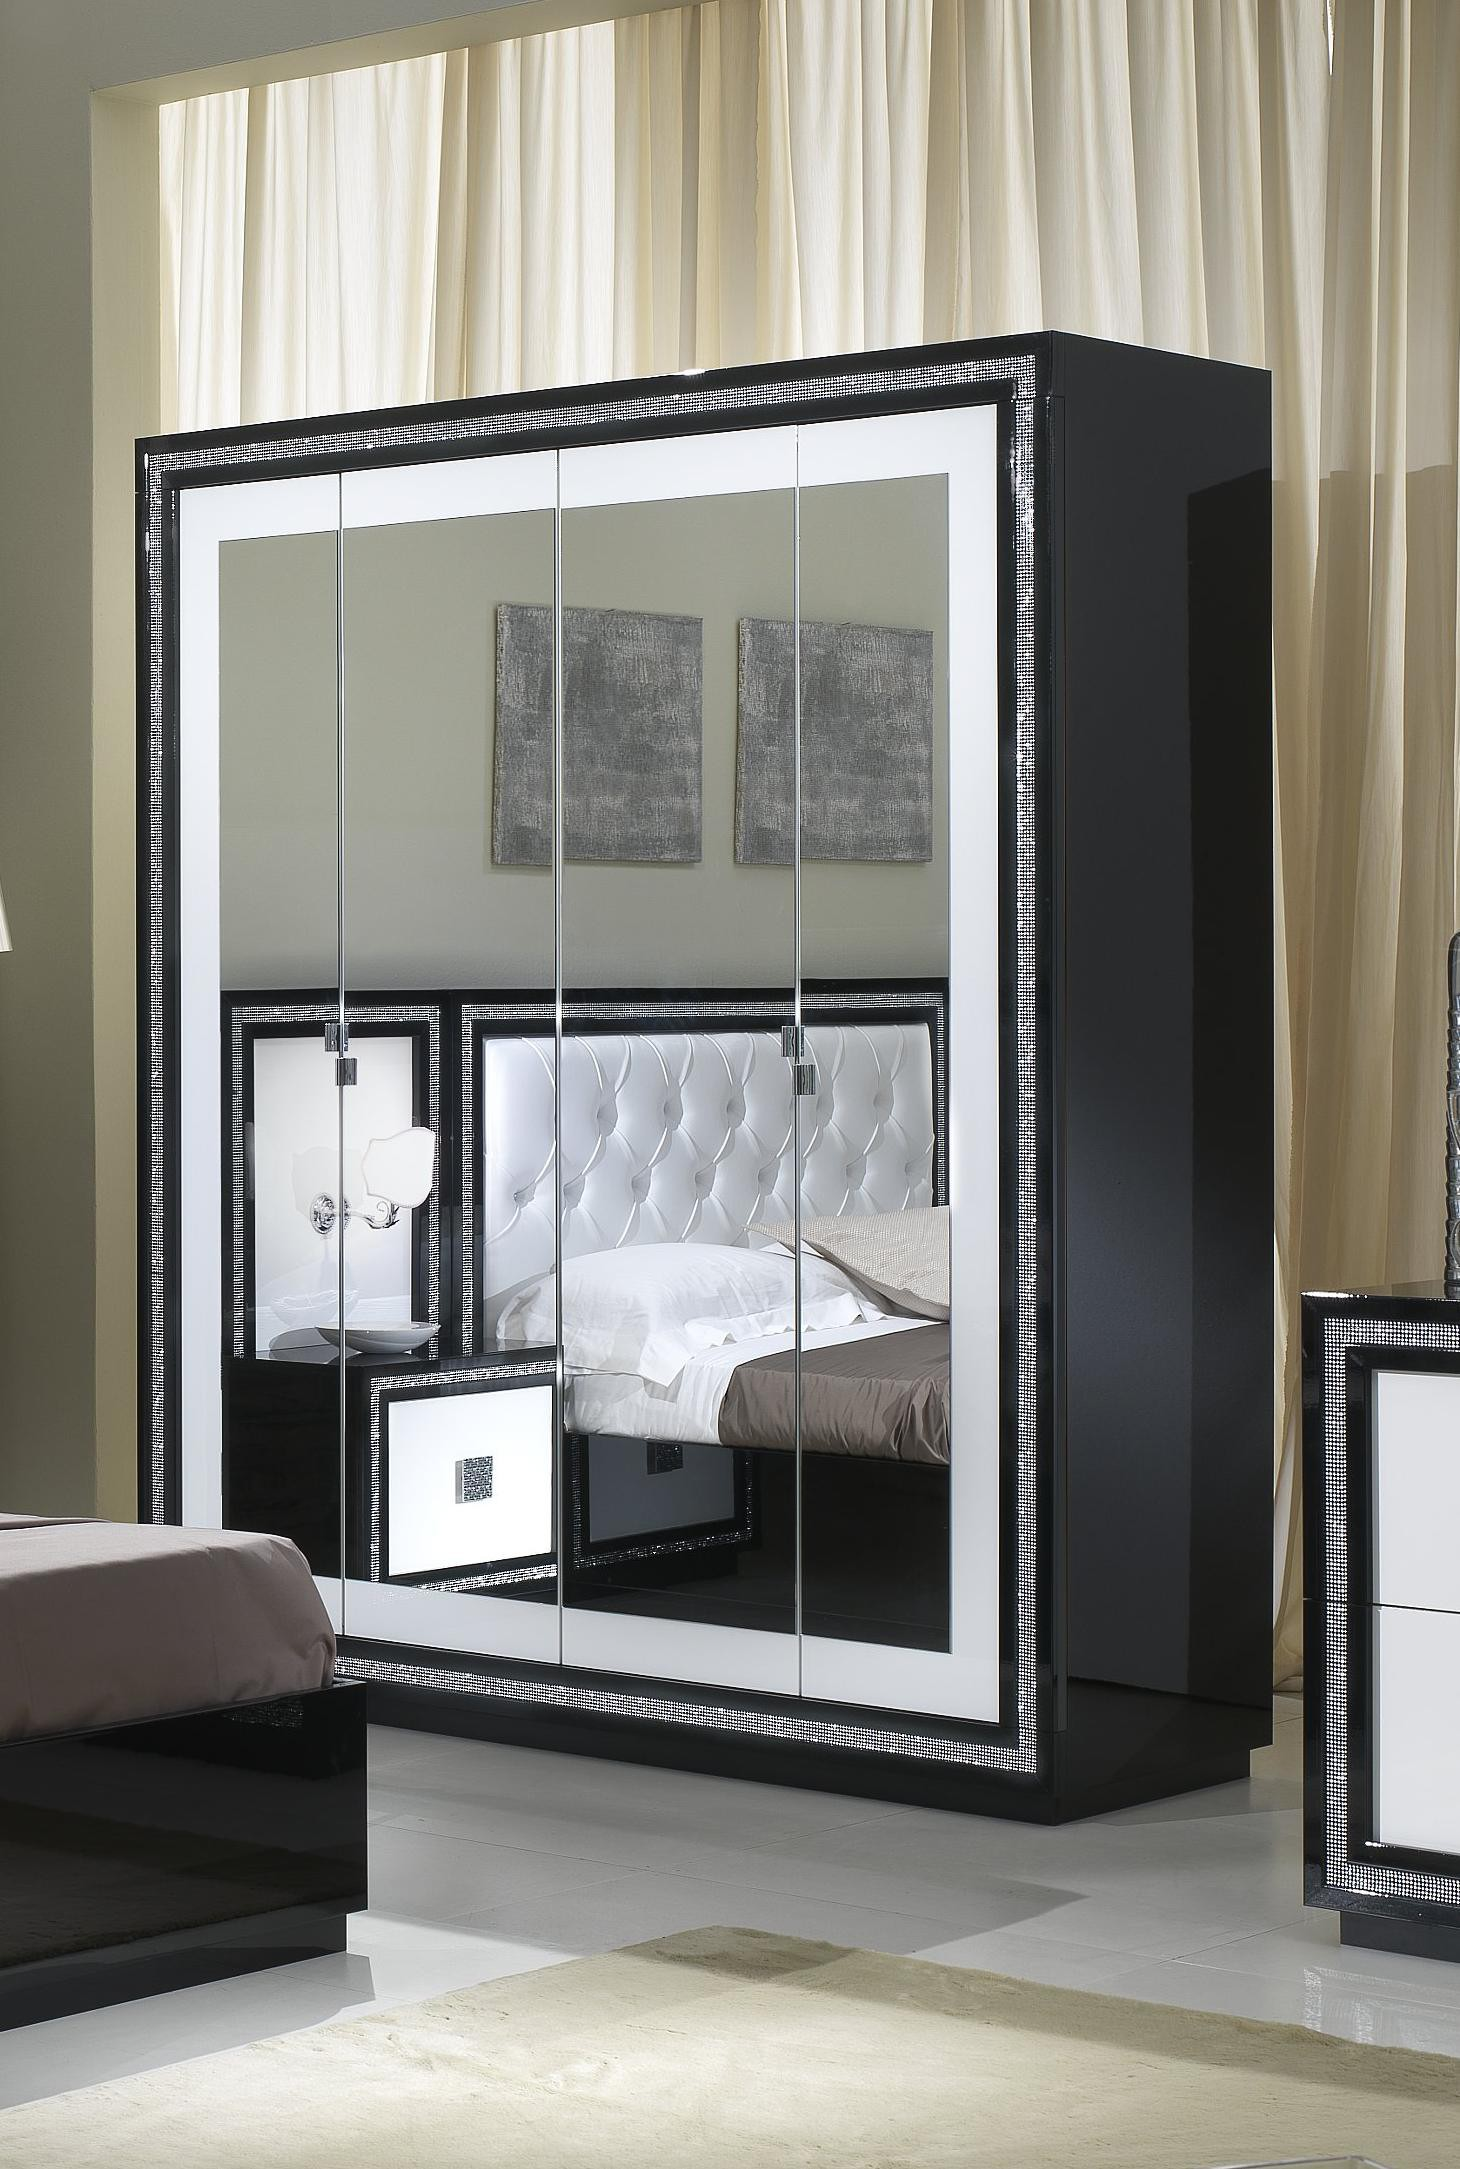 miroir salon pas cher id es de d coration int rieure french decor. Black Bedroom Furniture Sets. Home Design Ideas